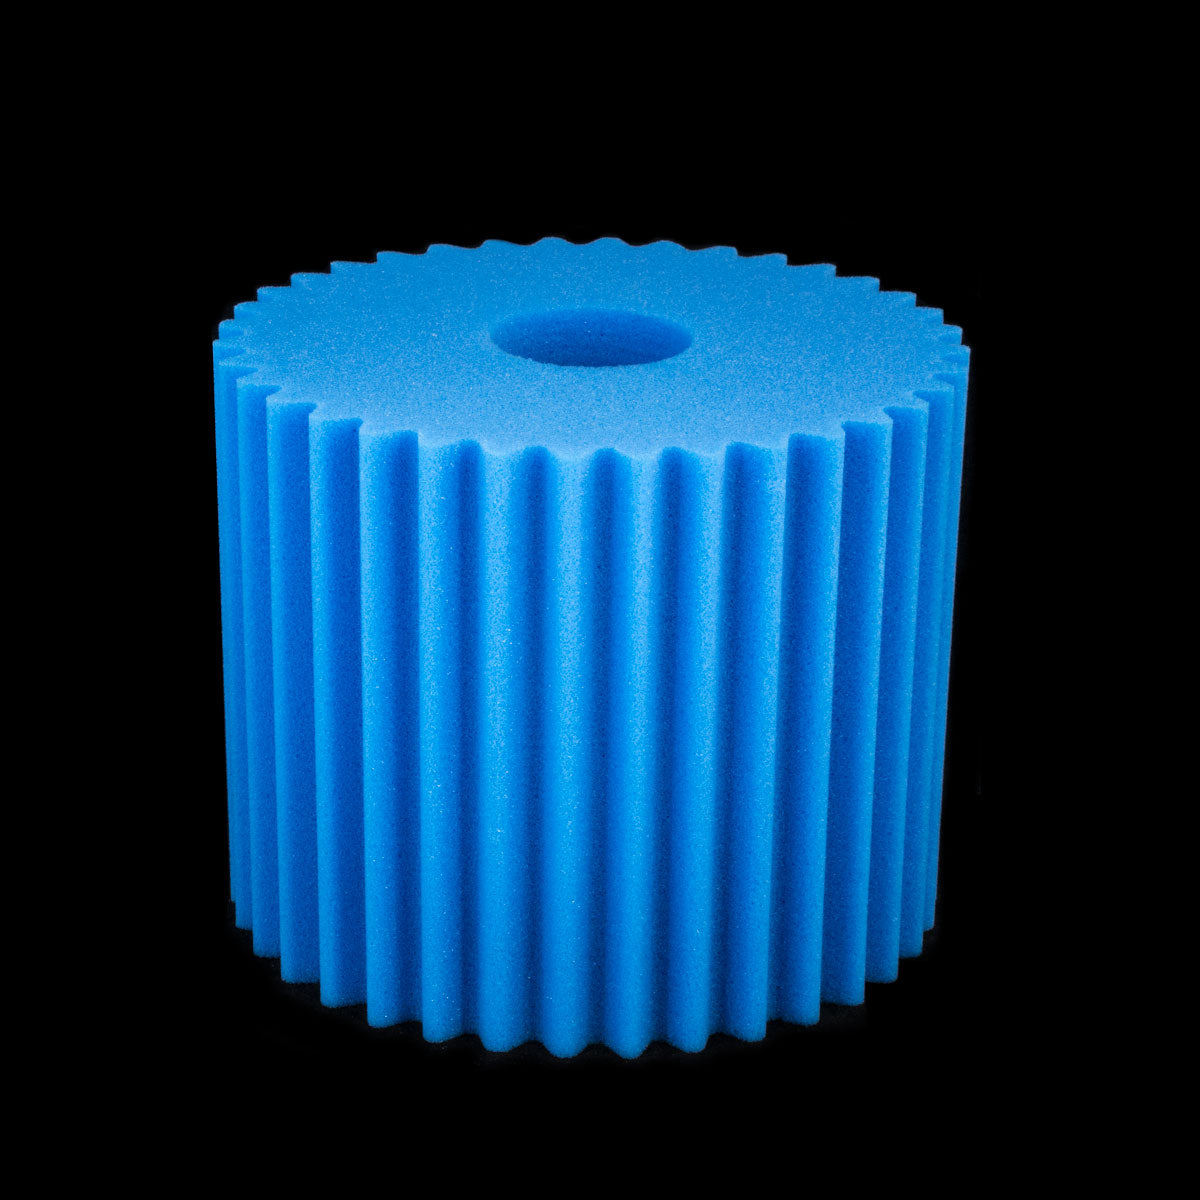 "F6500 FOAM FILTER FOR CENTRAL VACUUMS BLUE DESIGNED TO FIT AERUS LUX ELECTROLUX 8 1/2"" X 7""HIGH"